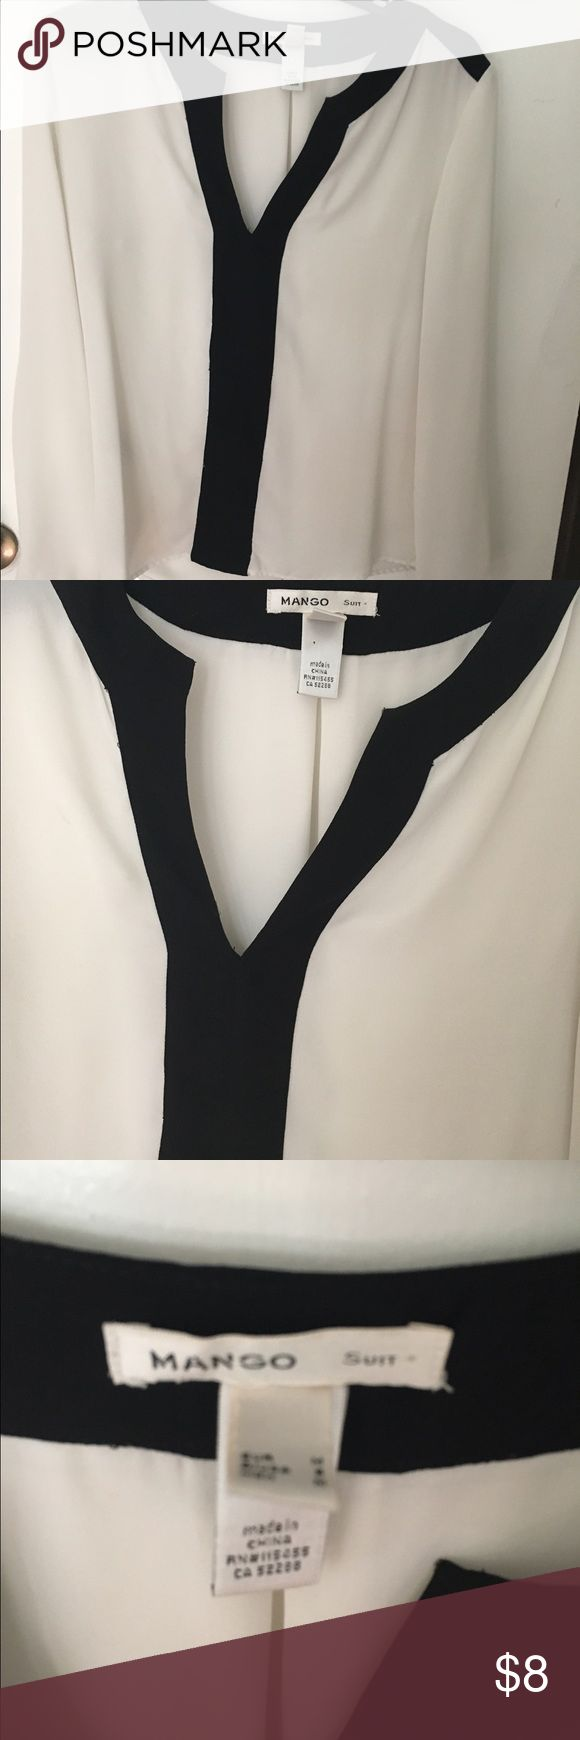 Mango suit white top White and black long sleeve top Mango Tops Blouses